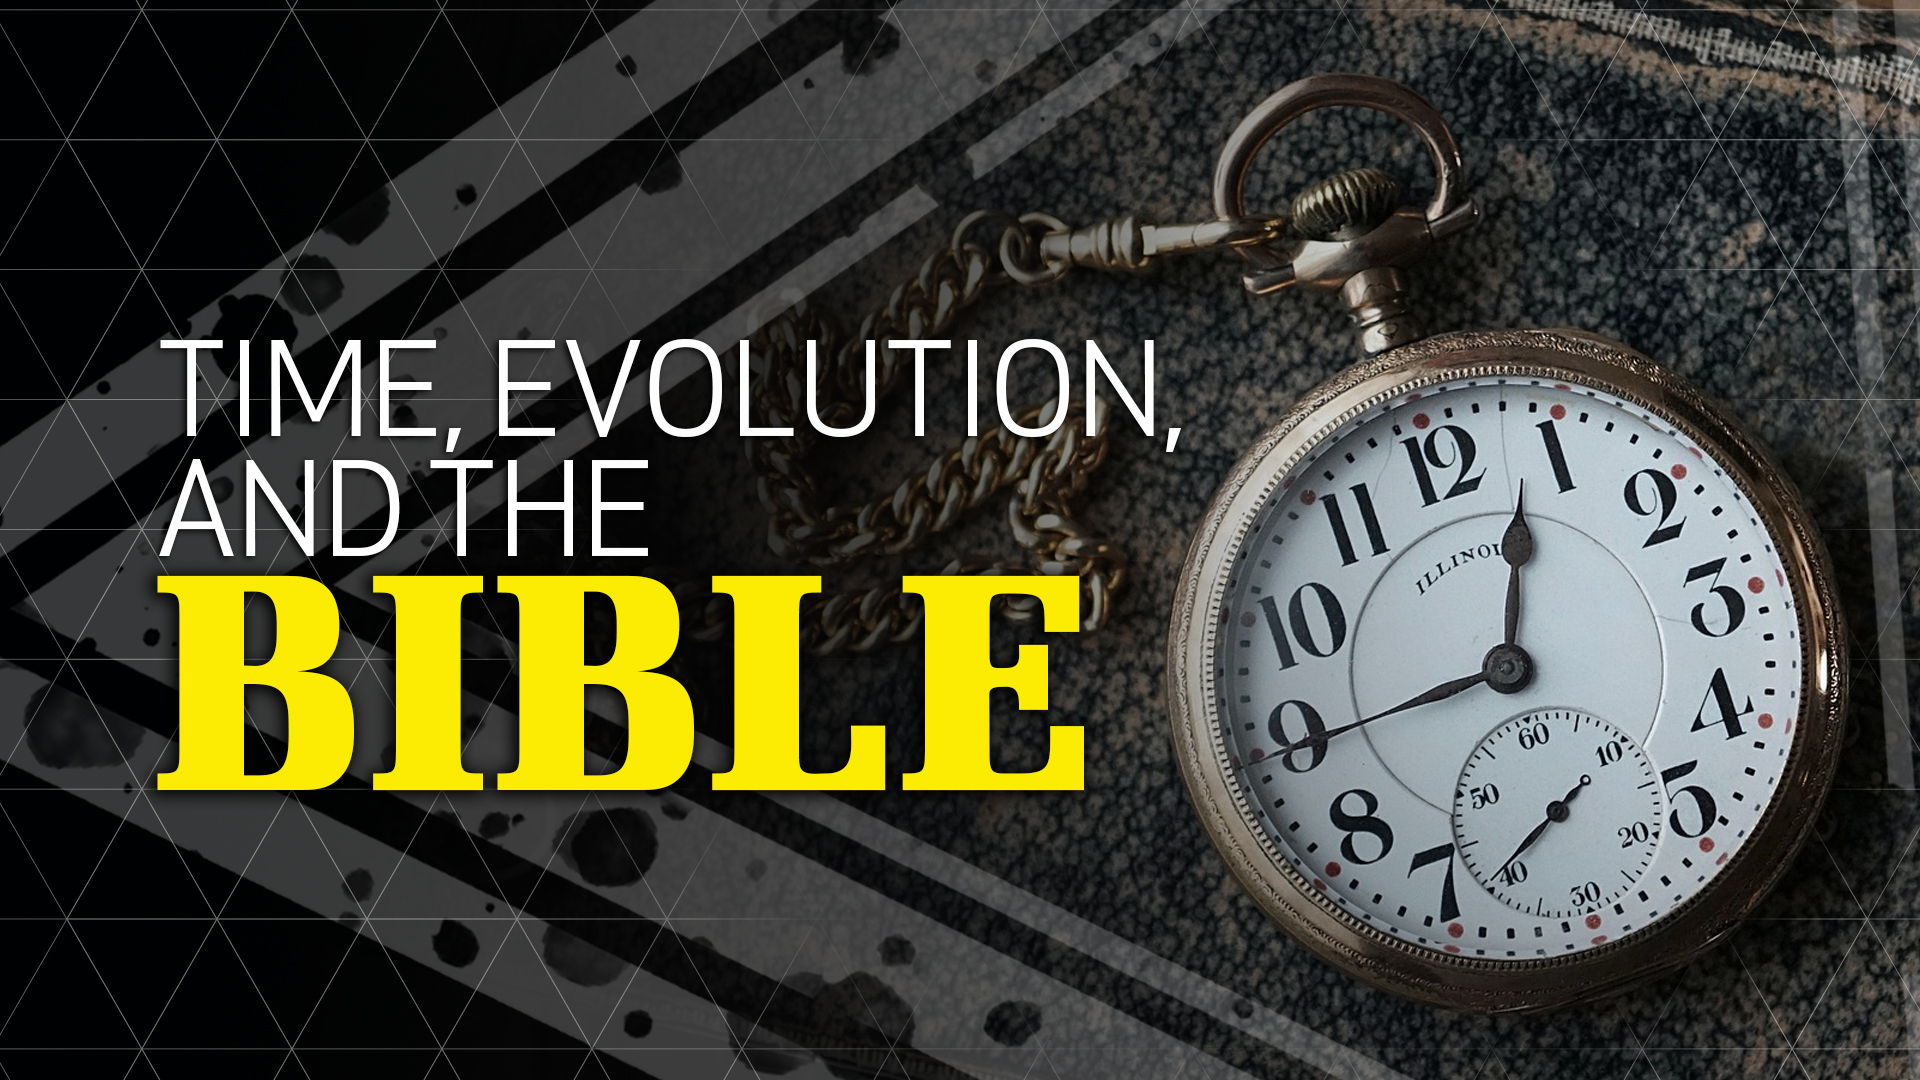 Time, Evolution, and the Bible